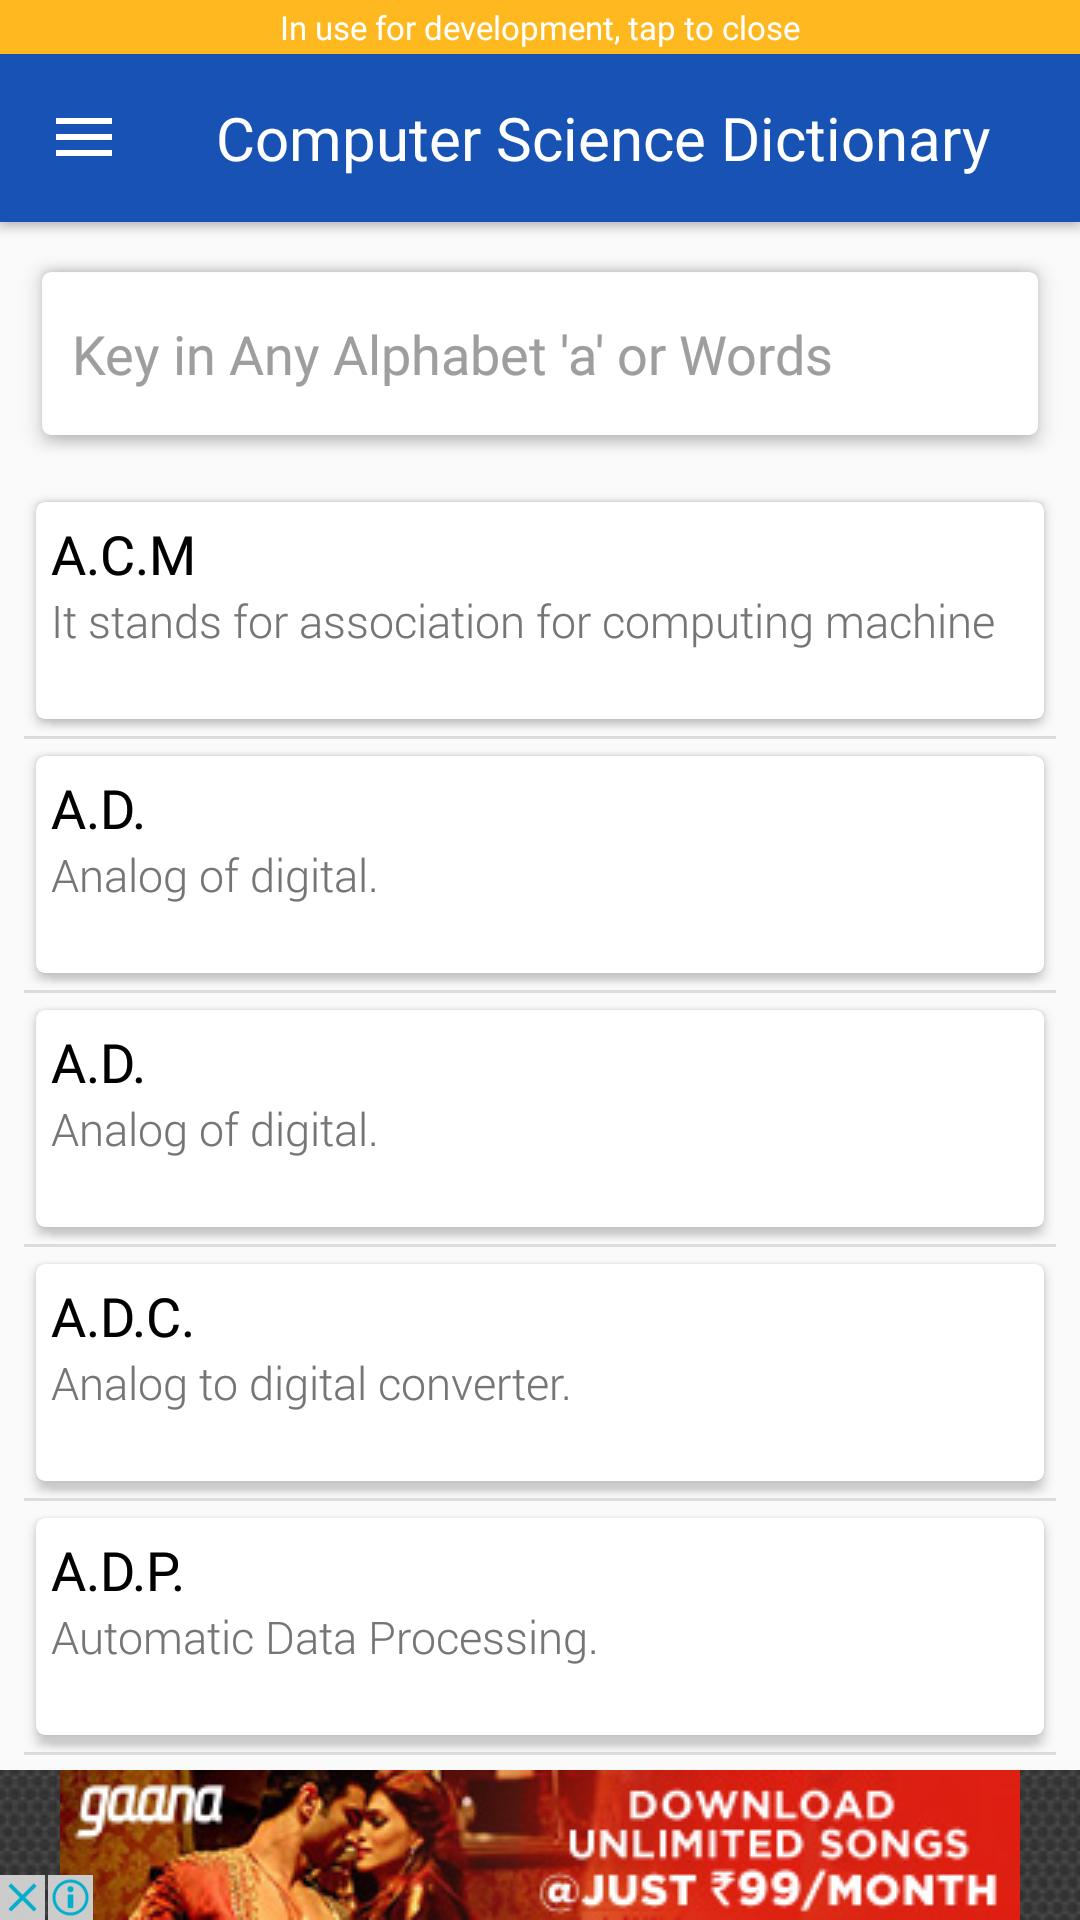 Computer Science Dictionary for Android - APK Download